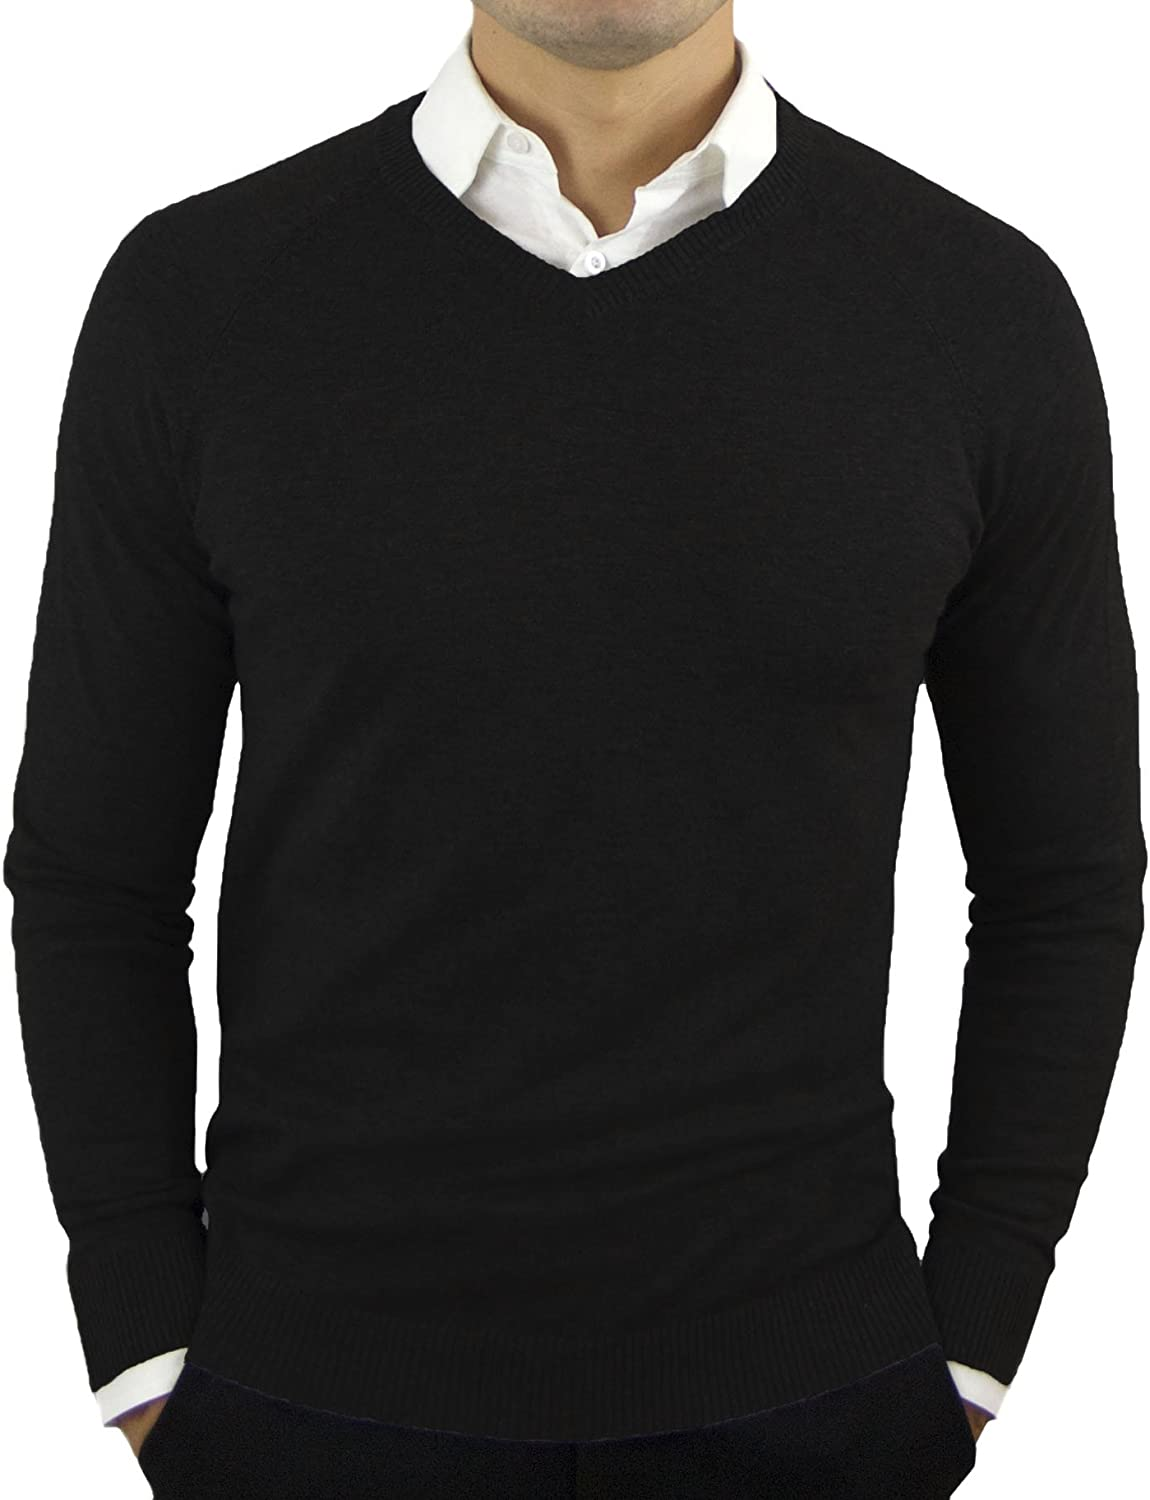 CC Perfect Slim Fit V Neck Sweaters for Men | Lightweight Breathable Mens  Sweater | Soft Fitted V-Neck Pullover for Men at Amazon Men's Clothing store